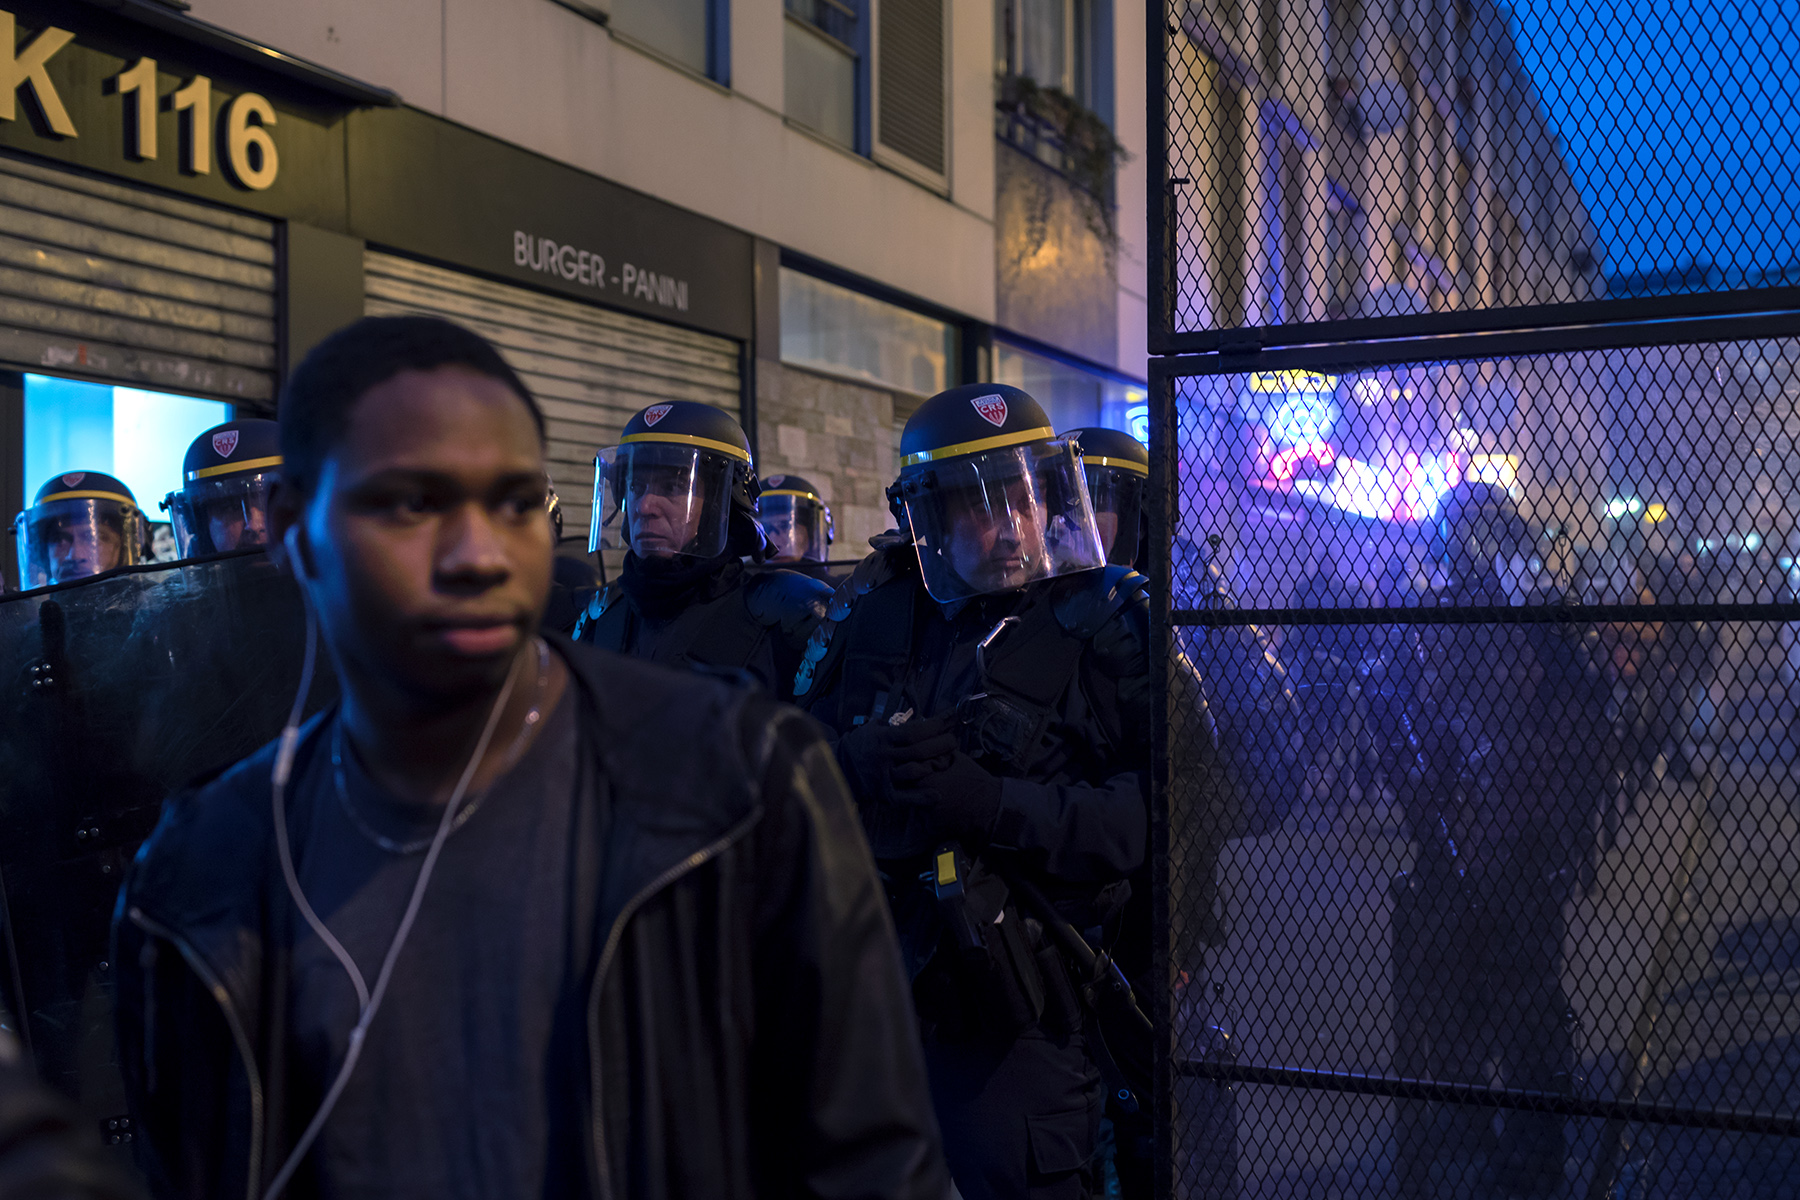 A young man stands in front of a police roadblock at Barbes station in Paris, France on Feb. 15, 2017.